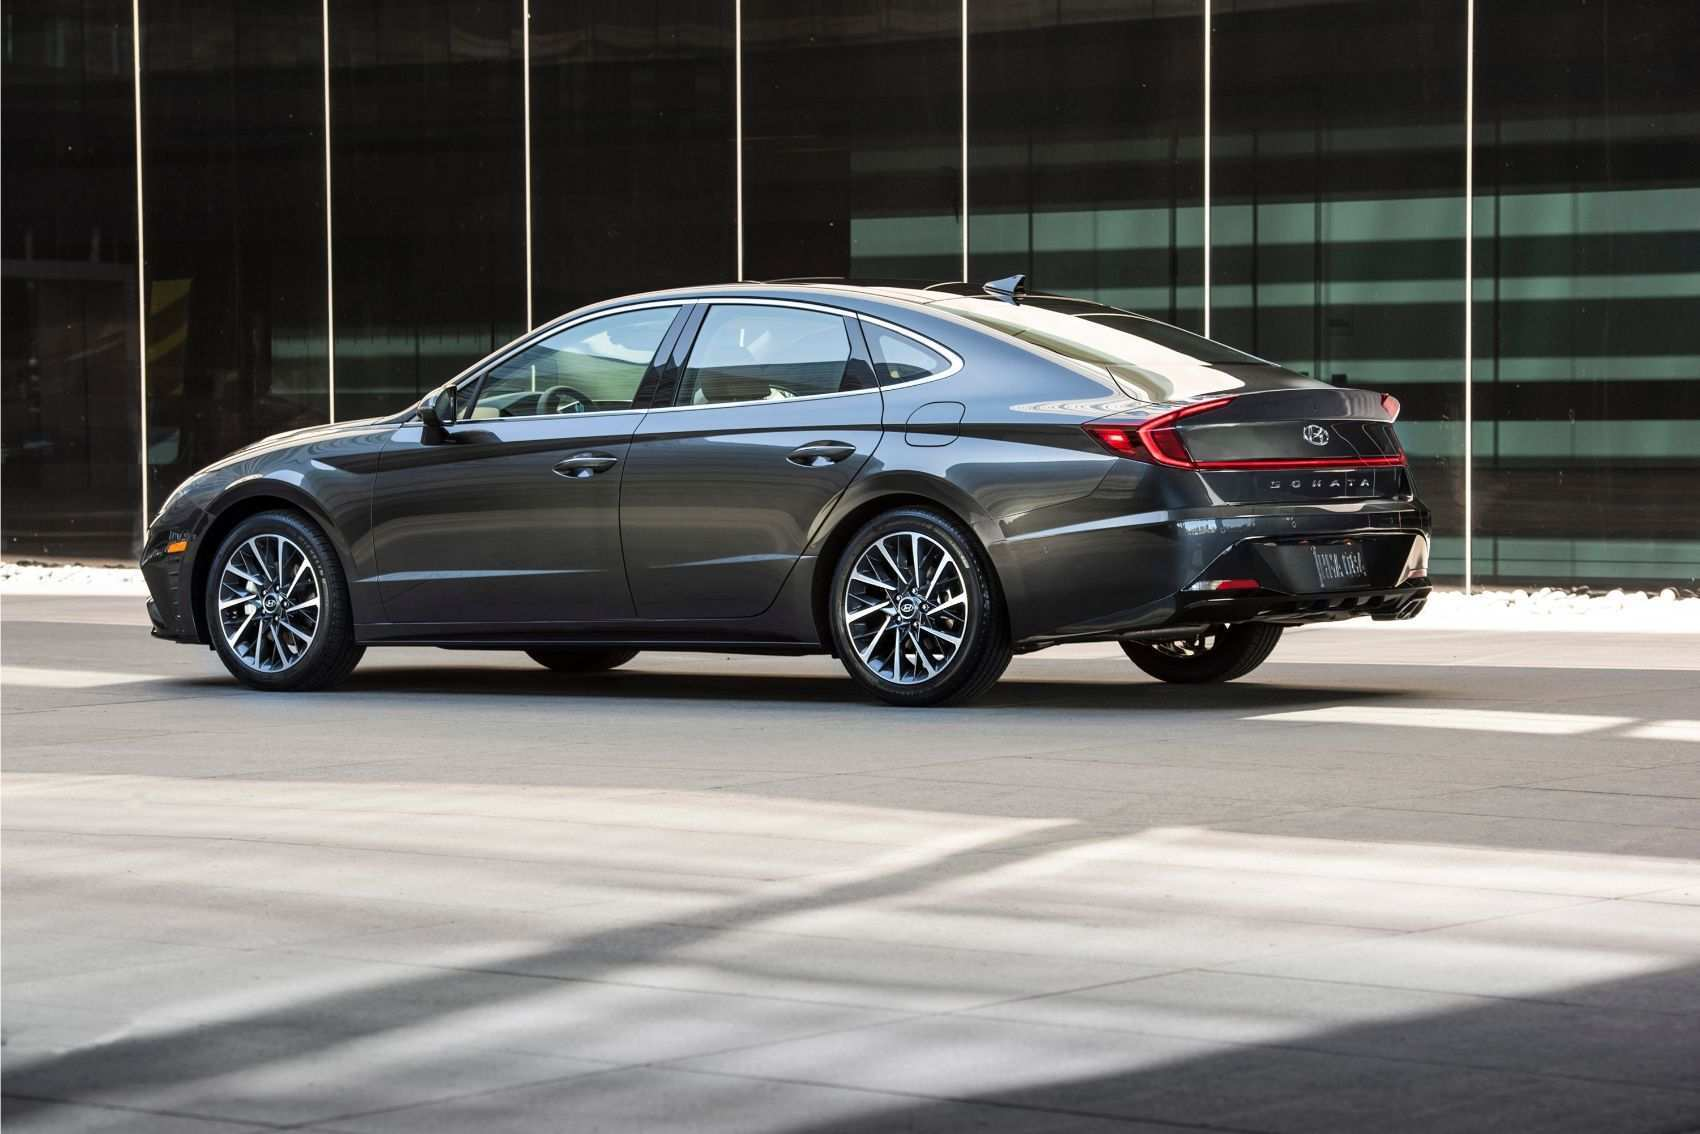 35 Great When Will The 2020 Hyundai Sonata Be Available Photos by When Will The 2020 Hyundai Sonata Be Available